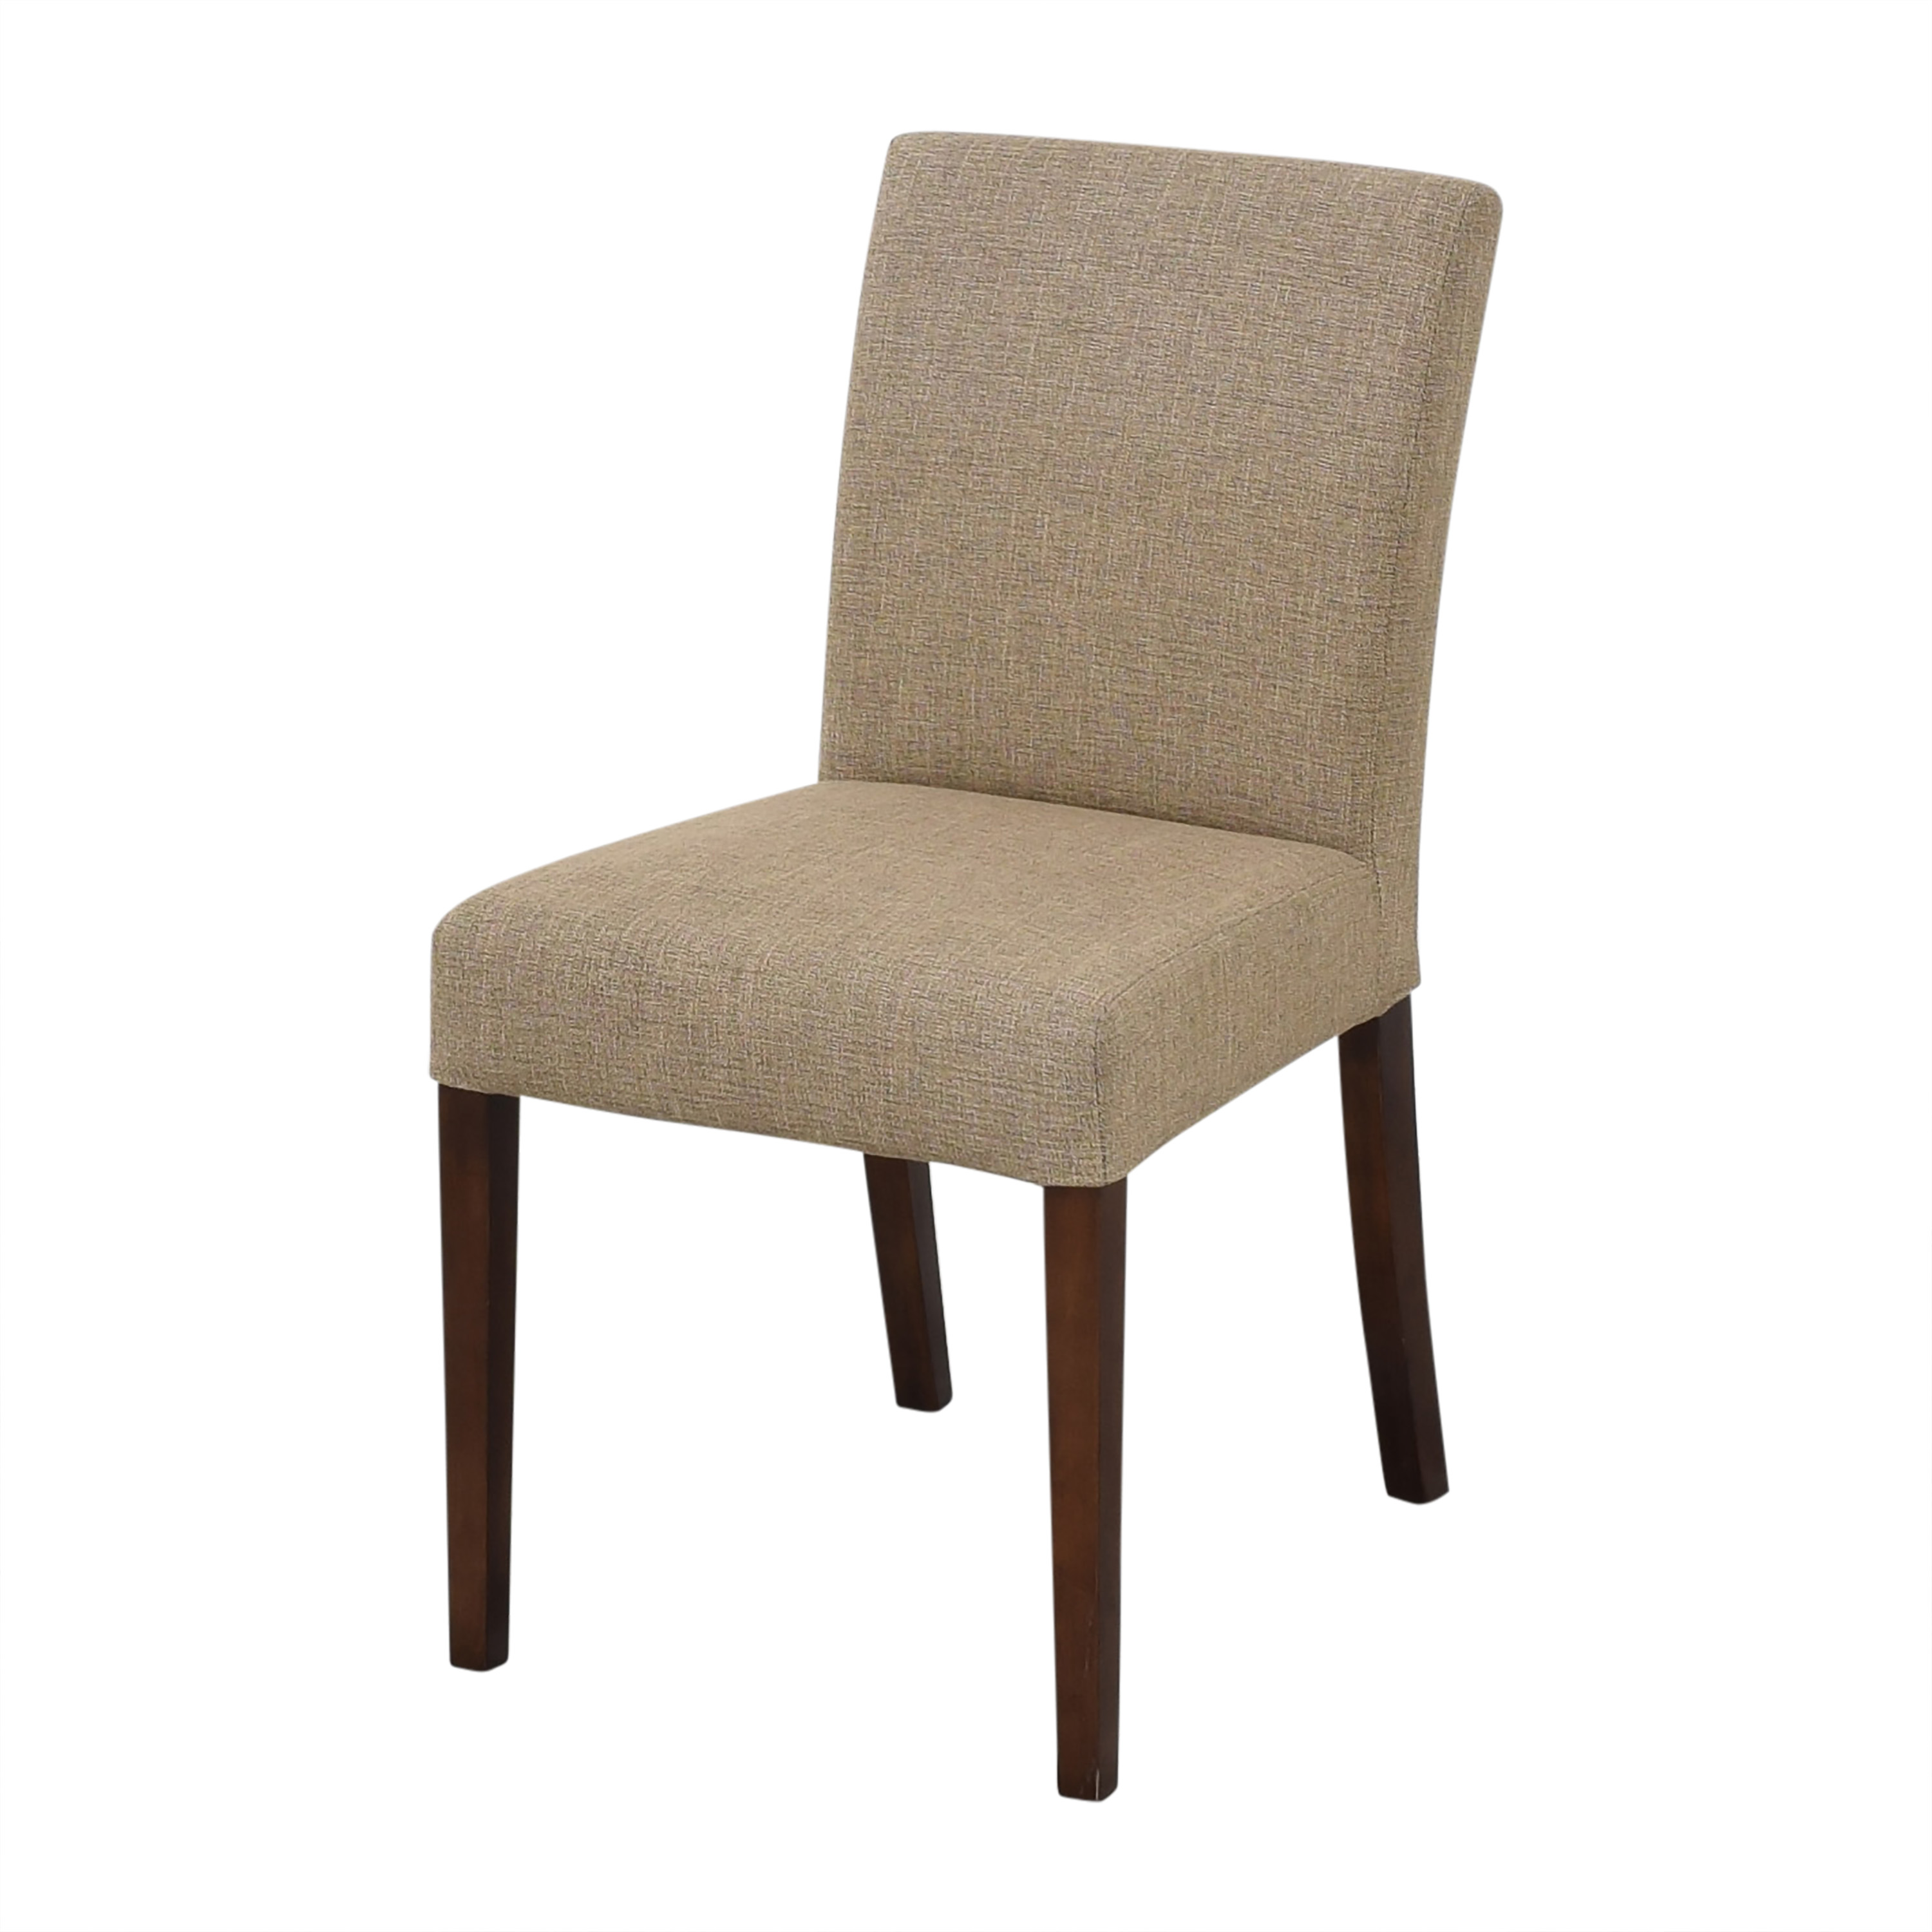 Crate & Barrel Crate & Barrel Lowe Dining Chairs coupon